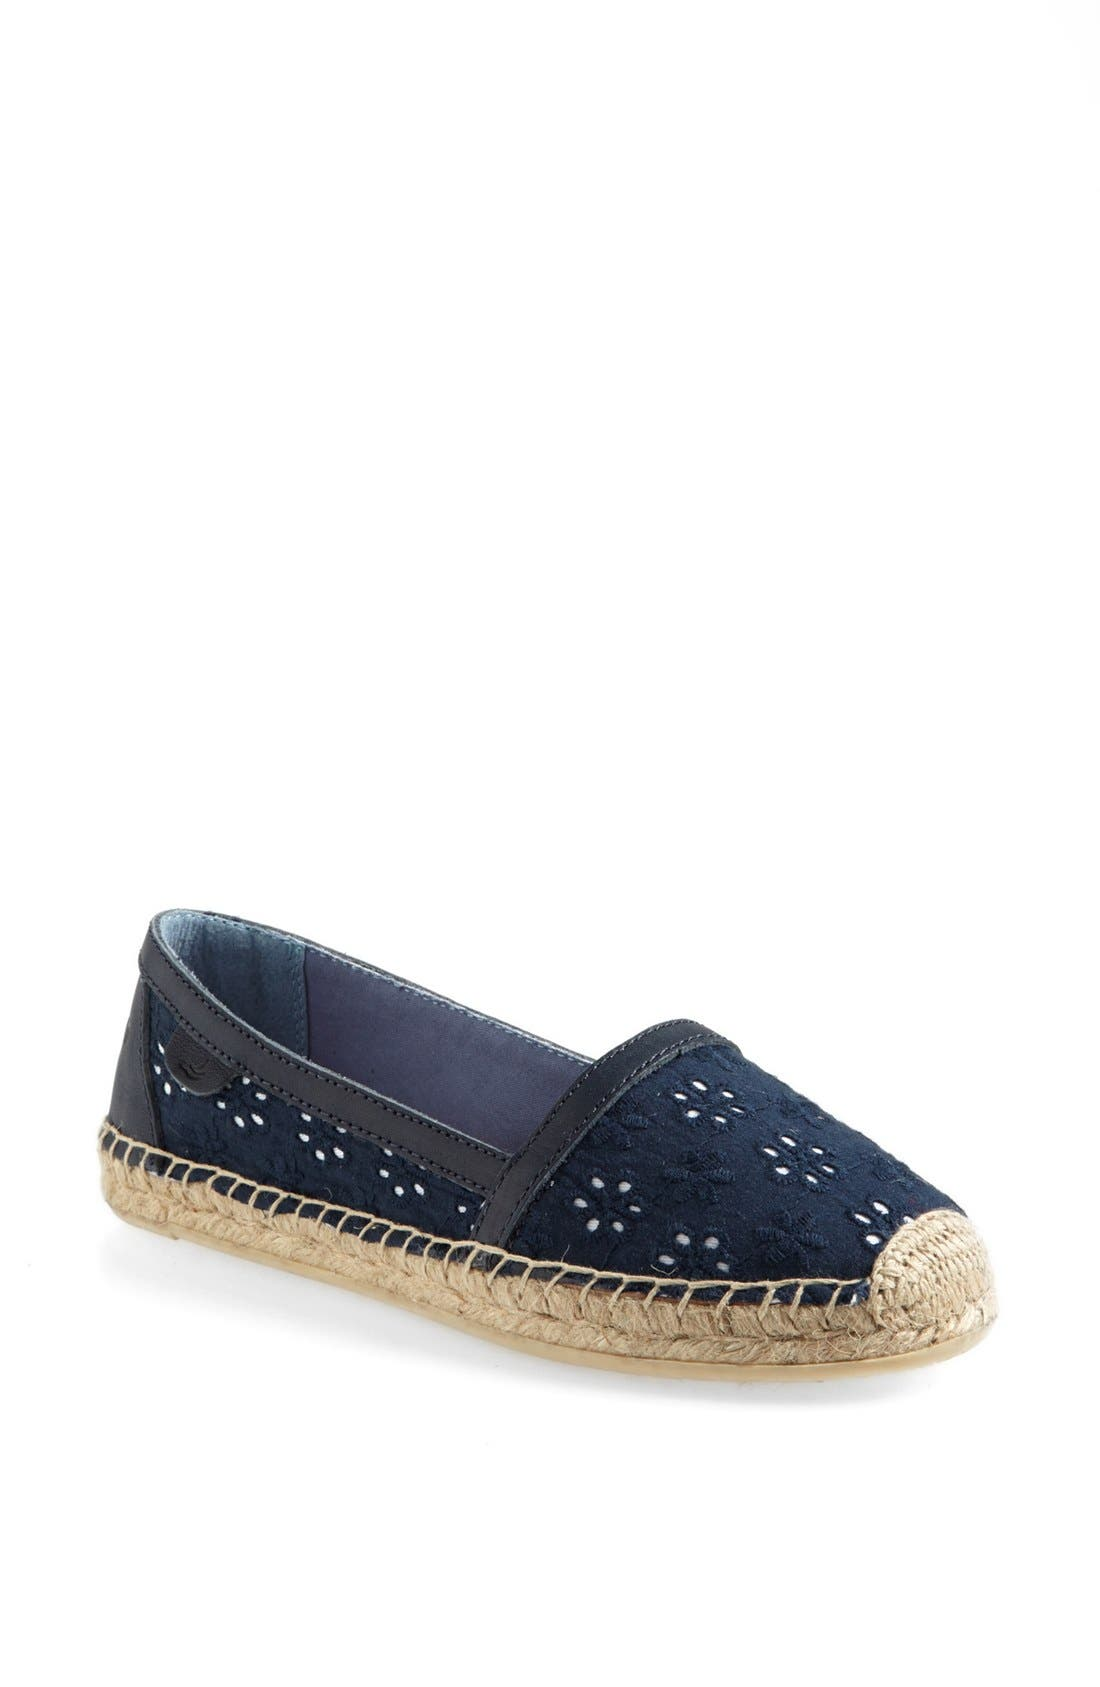 Main Image - SPERRY DANICA FLAT